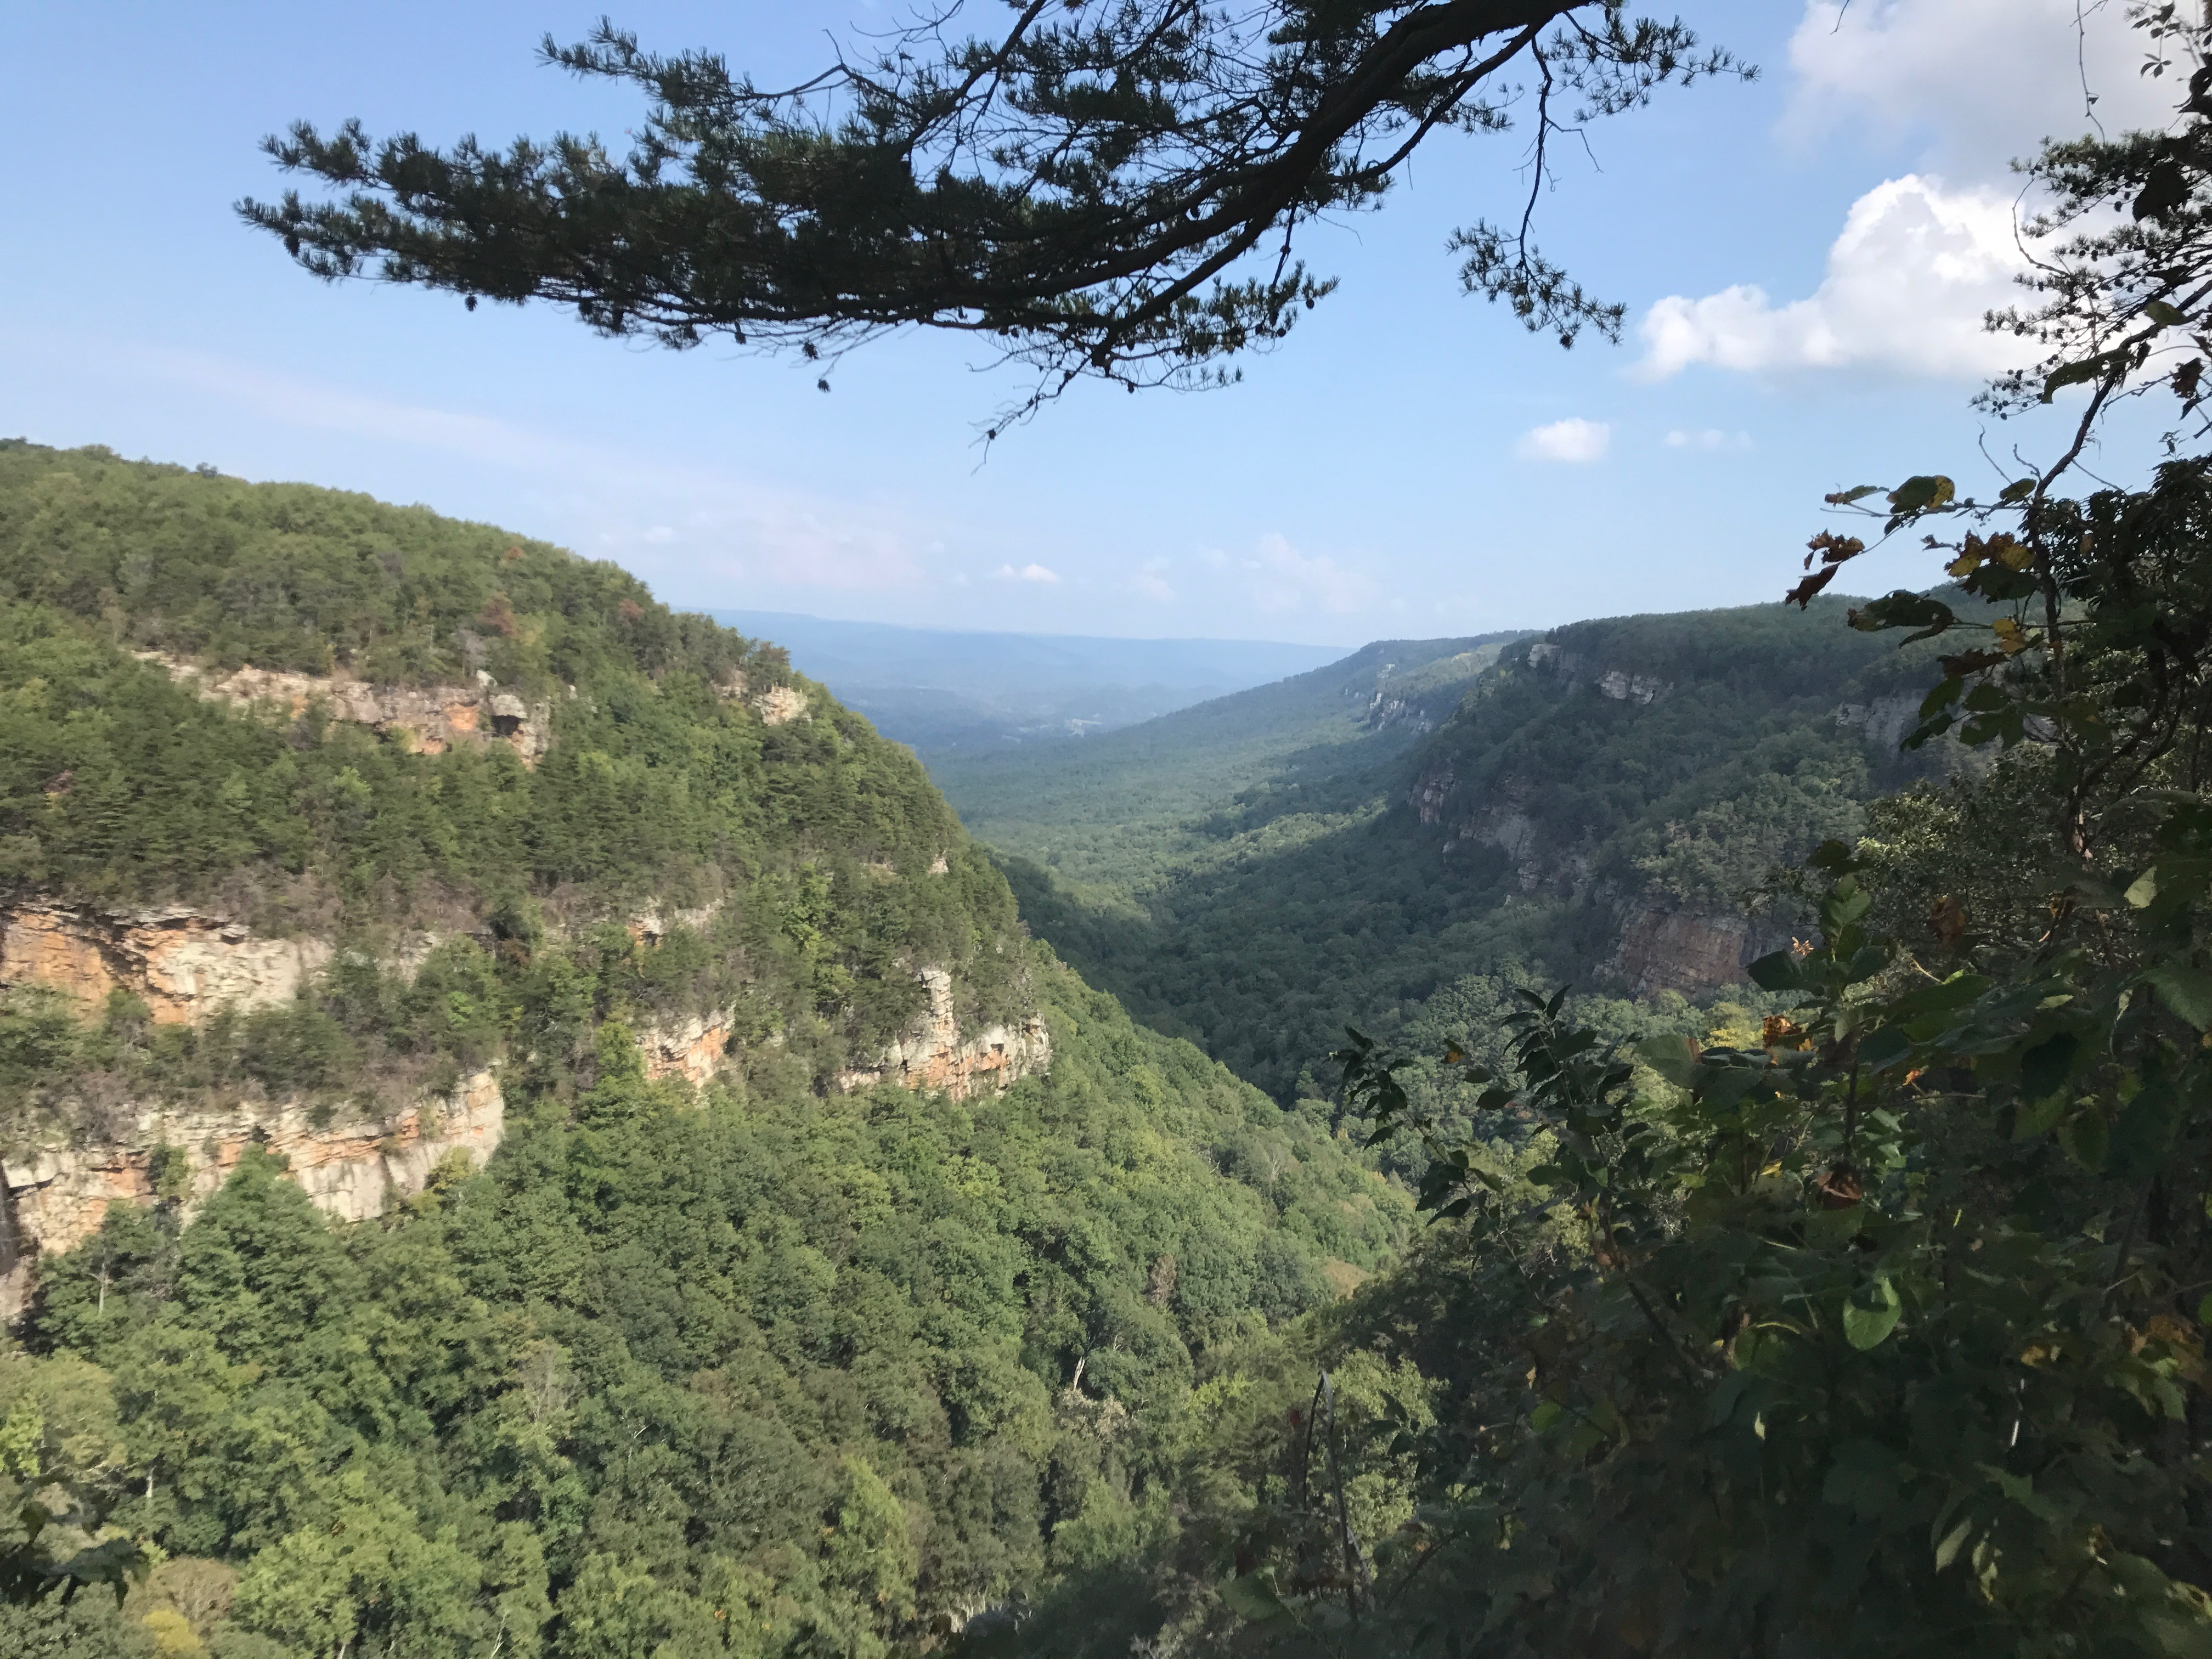 Moving To Chattanooga? Here Are Some Great Hikes Around Town